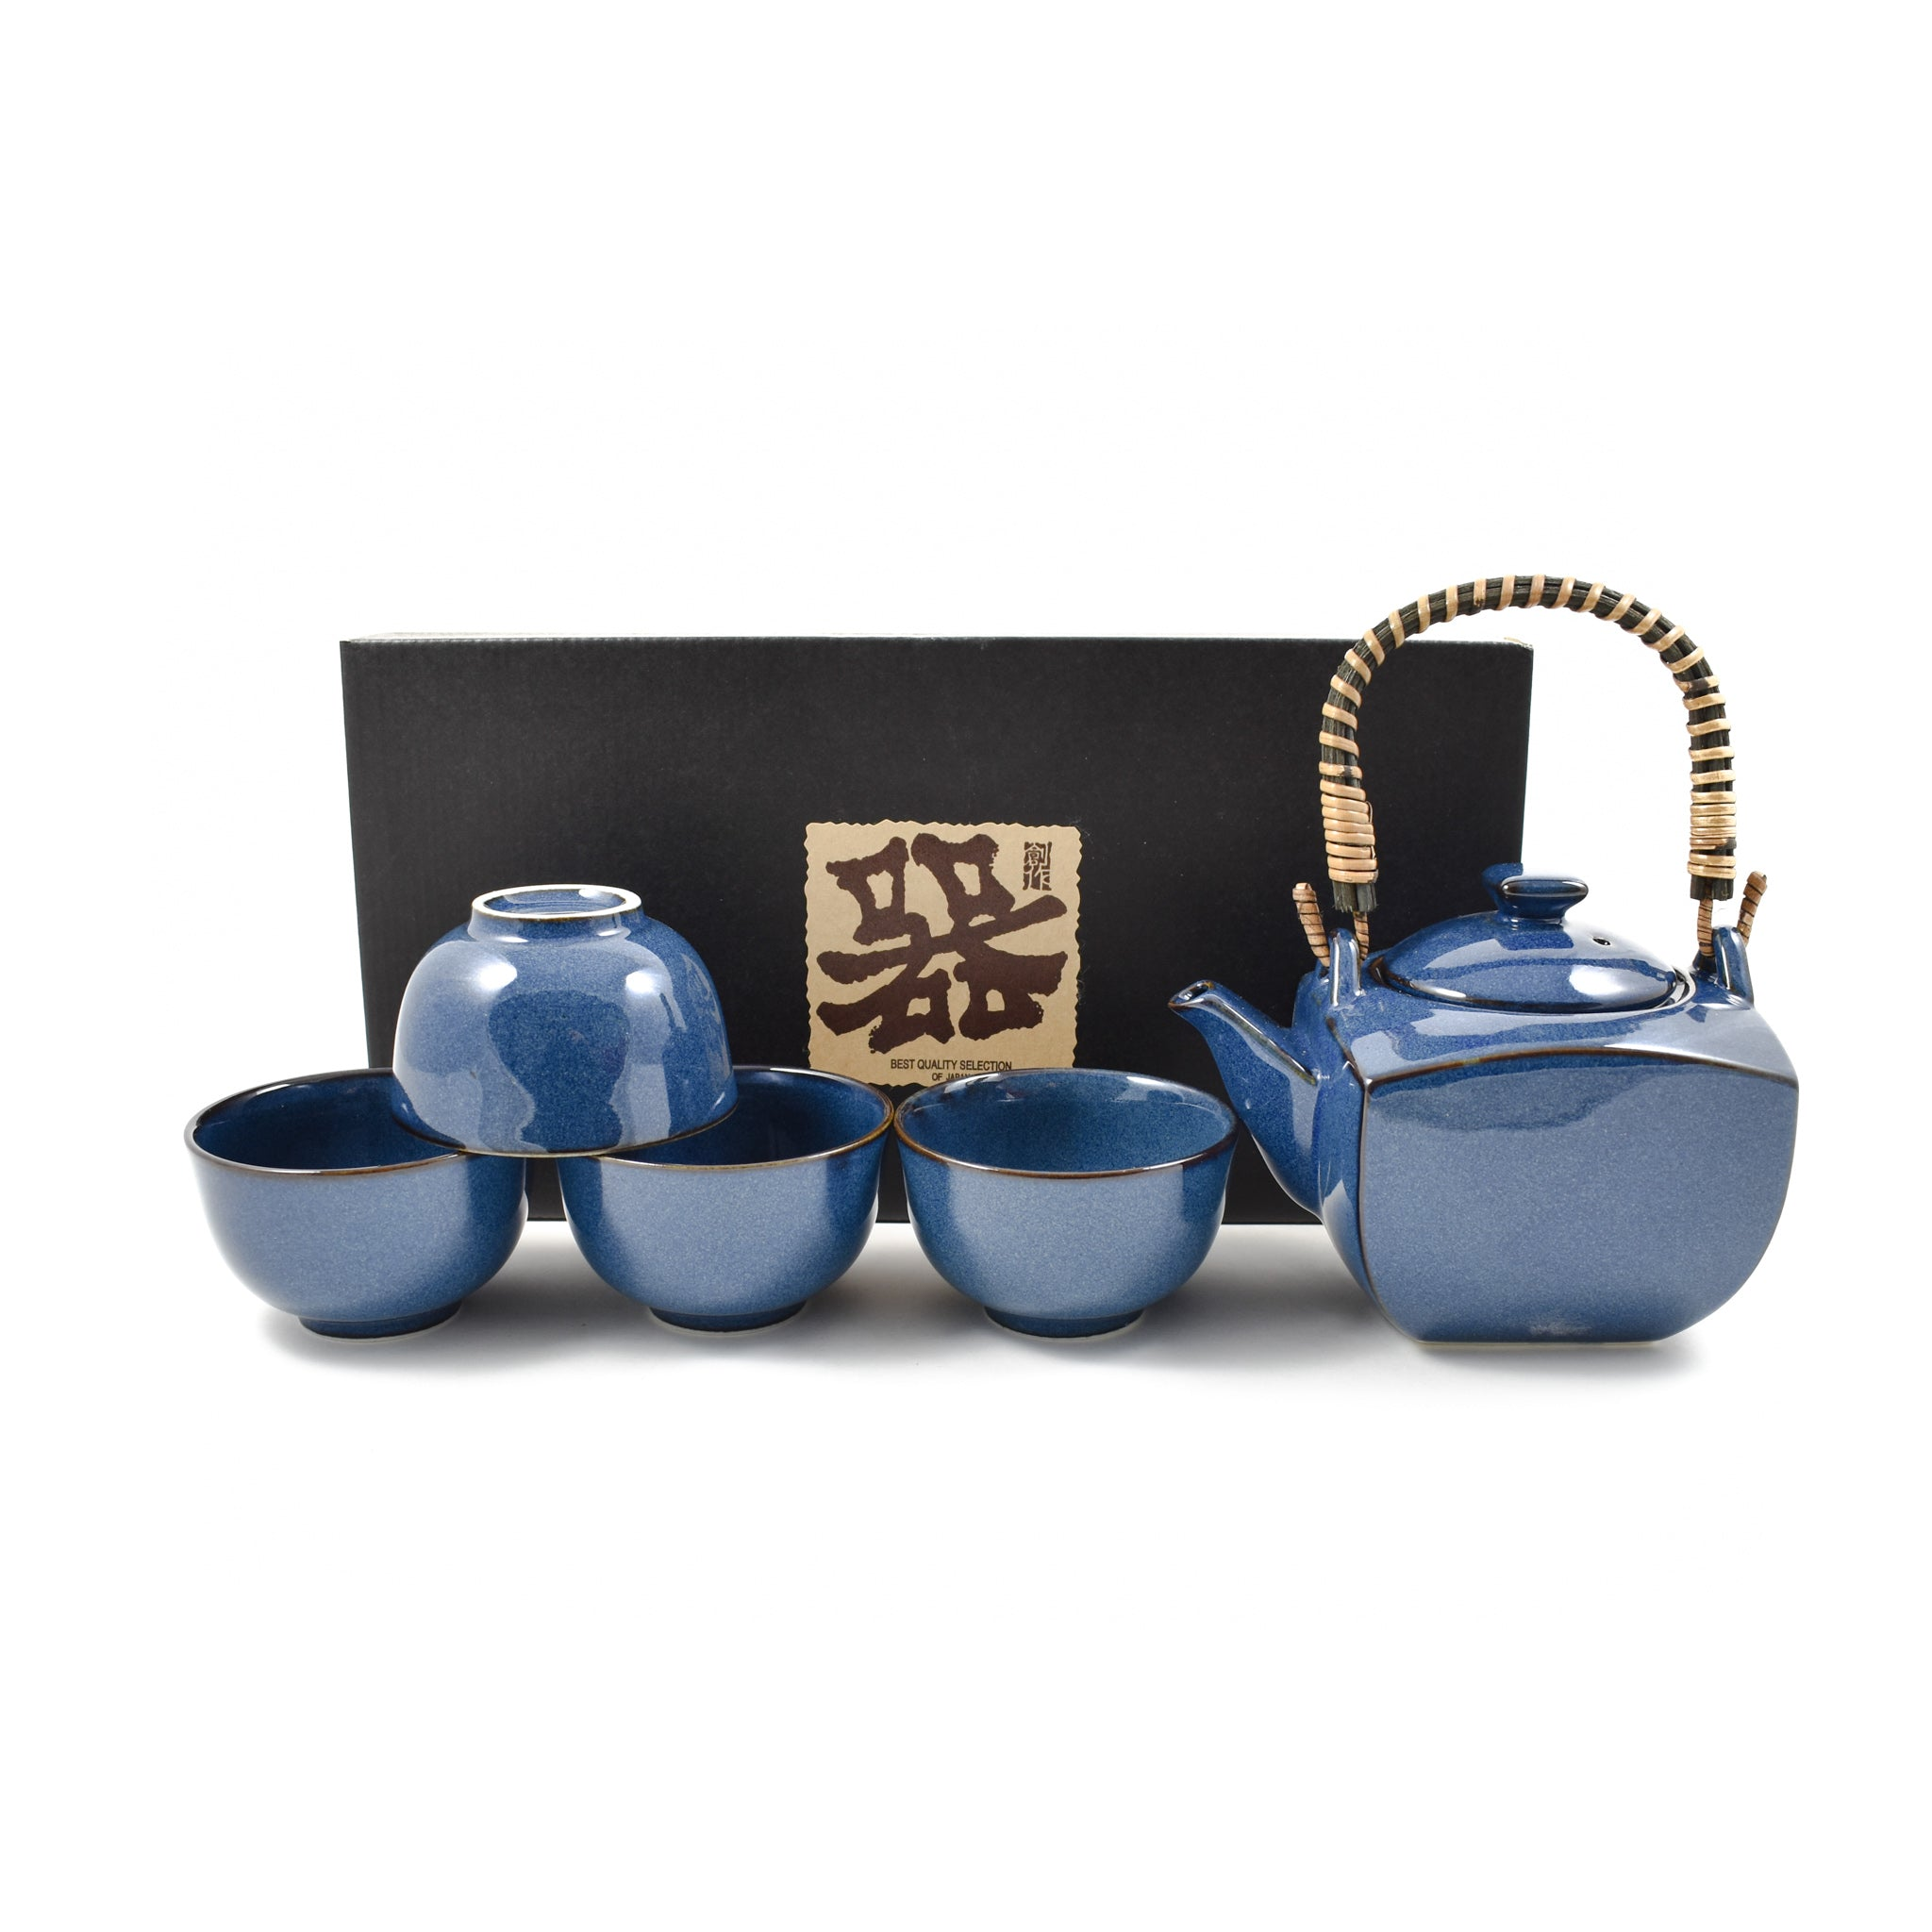 Kiji Stoneware & Ceramics Rich Blue Japanese Tea Set for Four Tableware Japanese Tableware Japanese Food